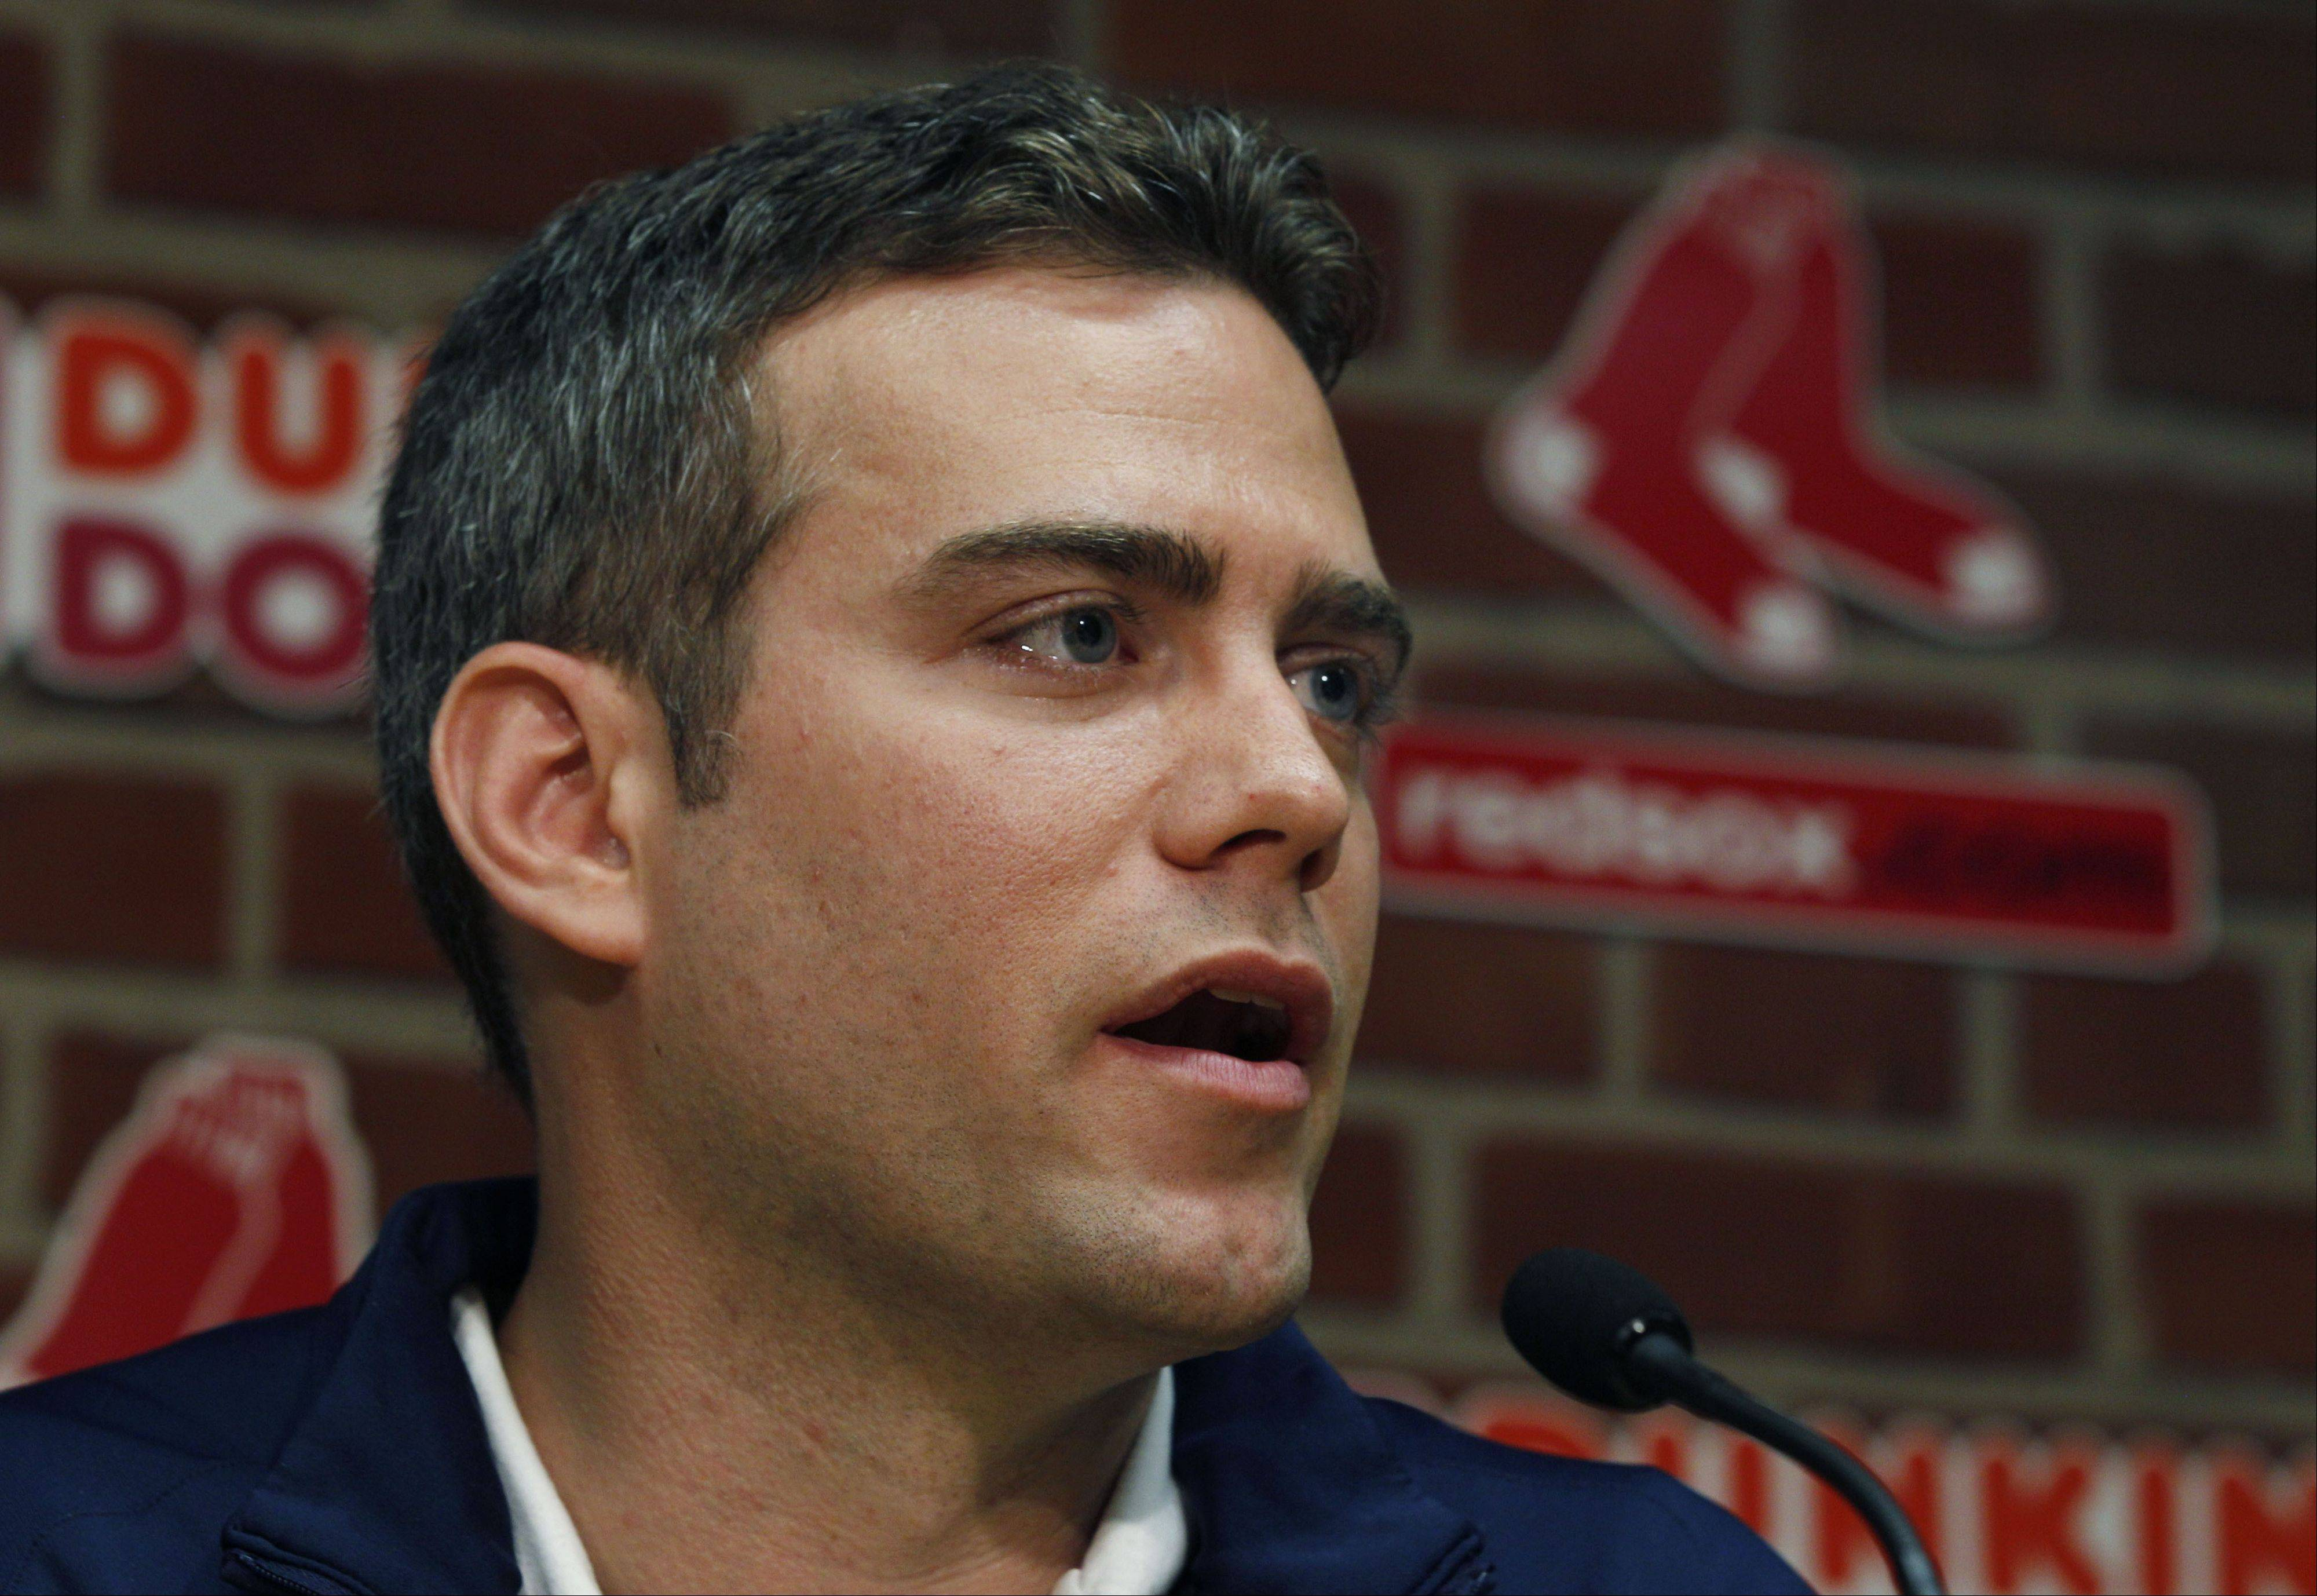 In a recent poll by the Boston Globe, more than 55 percent of the respondents said the Red Sox should part ways with general manager Theo Epstein, who helped them win two World Series titles. Epstein also has been criticized for signing bad contracts with John Lackey and Carl Crawford.